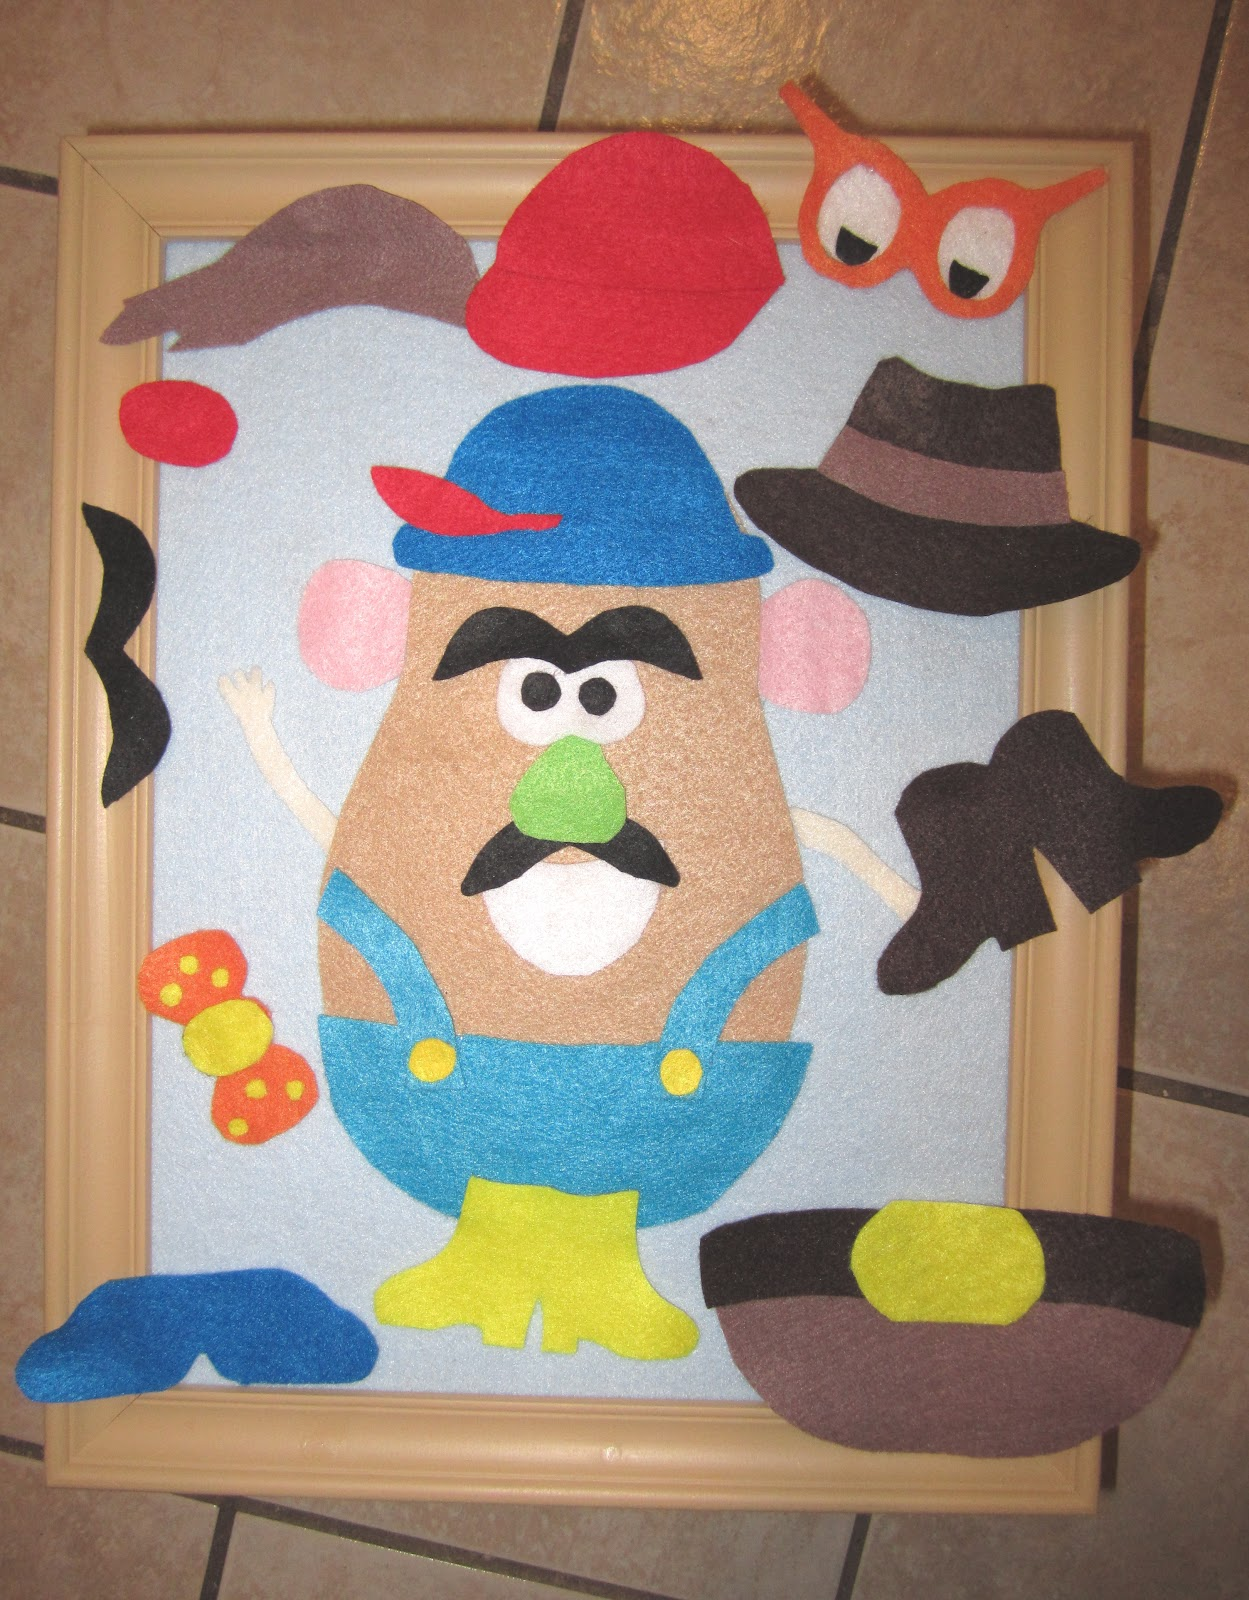 mr potato head felt template - making fun potato head on felt